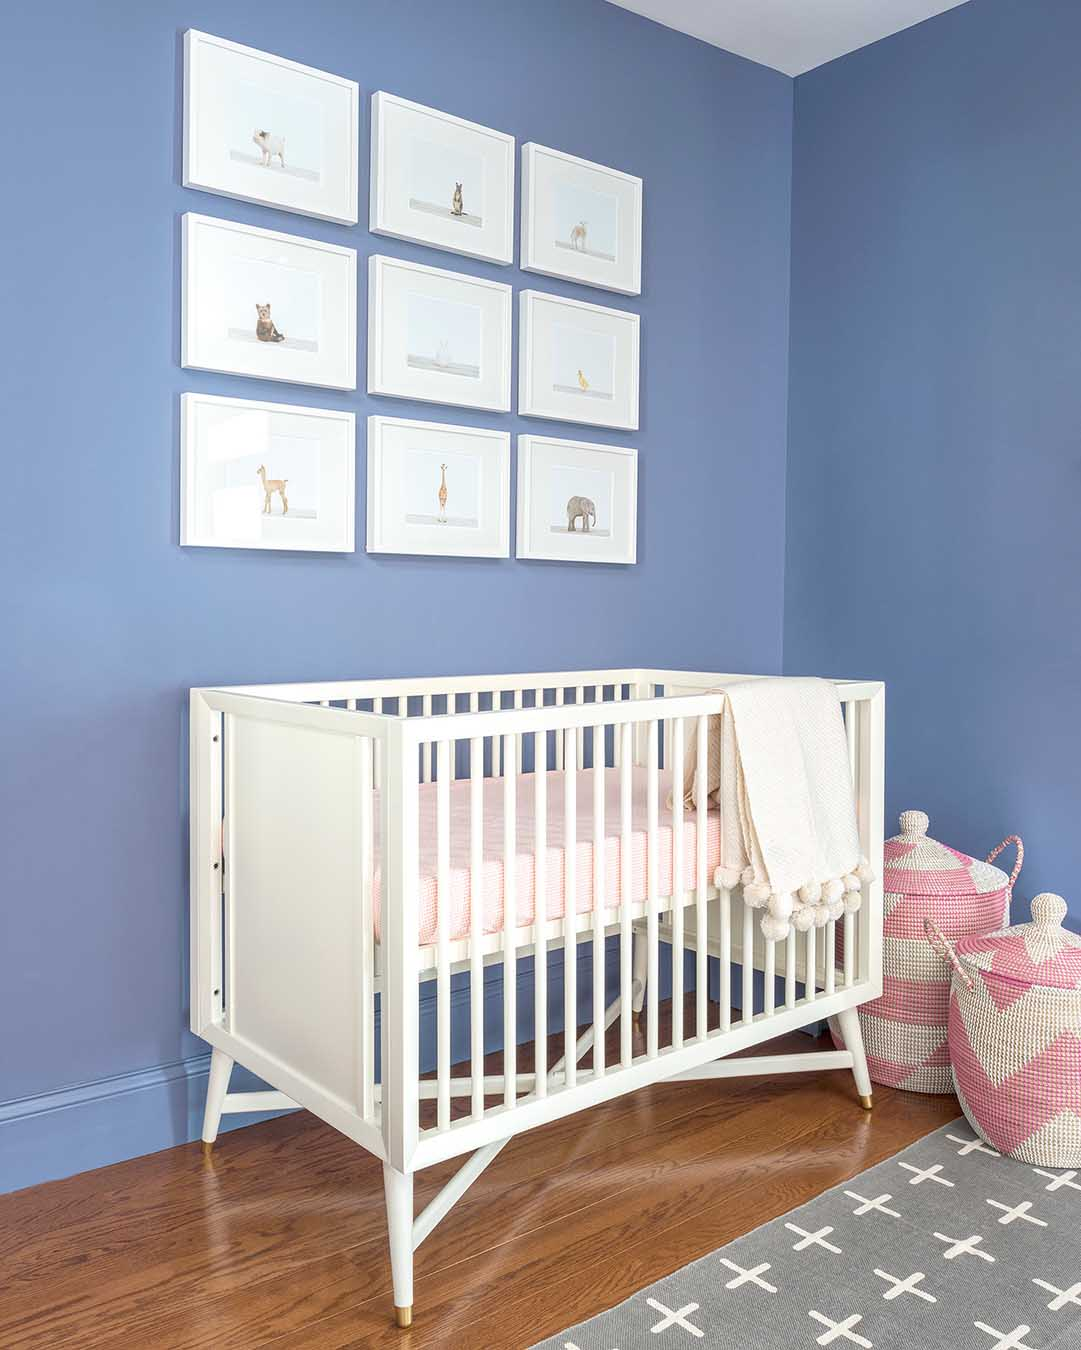 Everything We Know About Beyonce S Nursery Design Ideas: Design Story: A Family's First Nursery